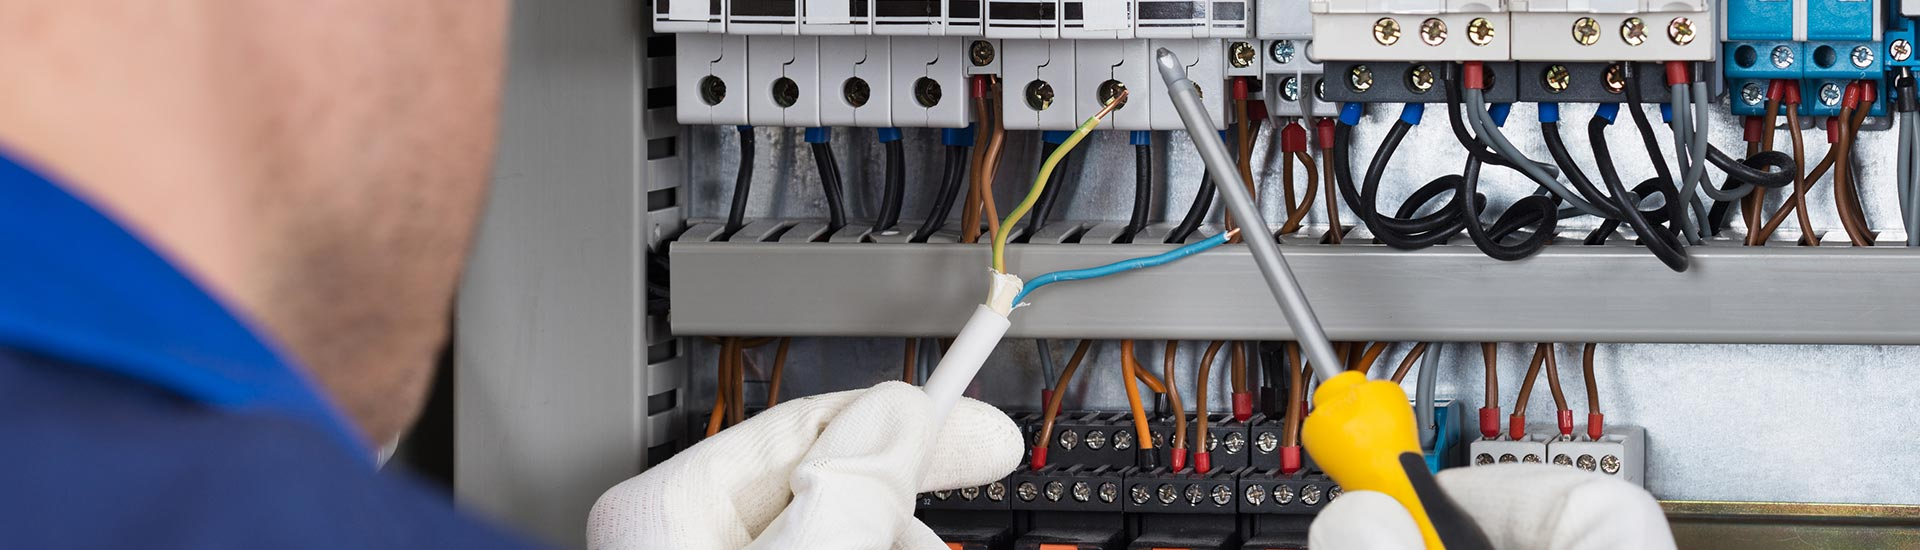 hight resolution of professional punctual honest and fair electrician service